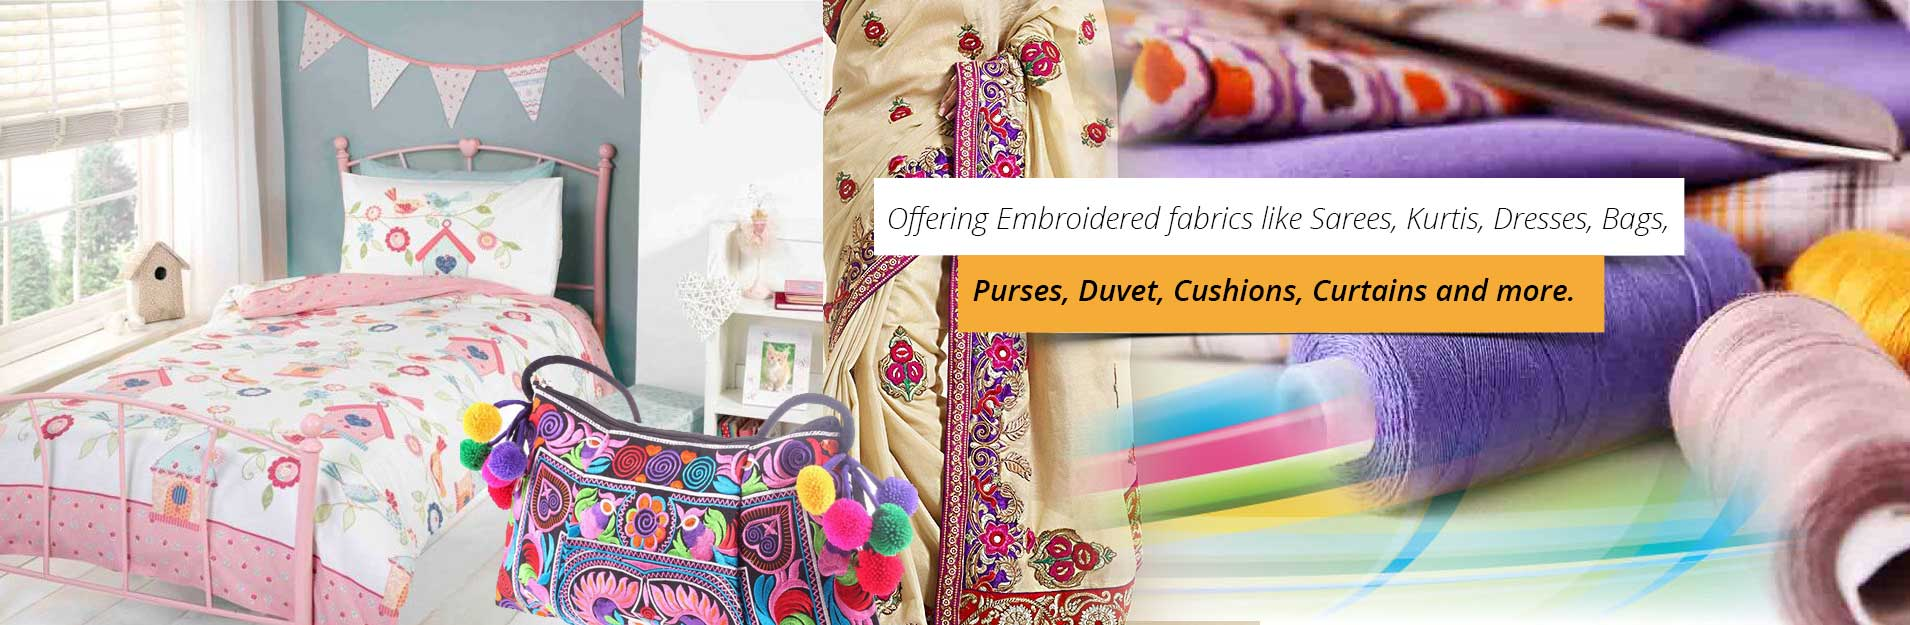 Embroidered-Fabrics-&-Services1